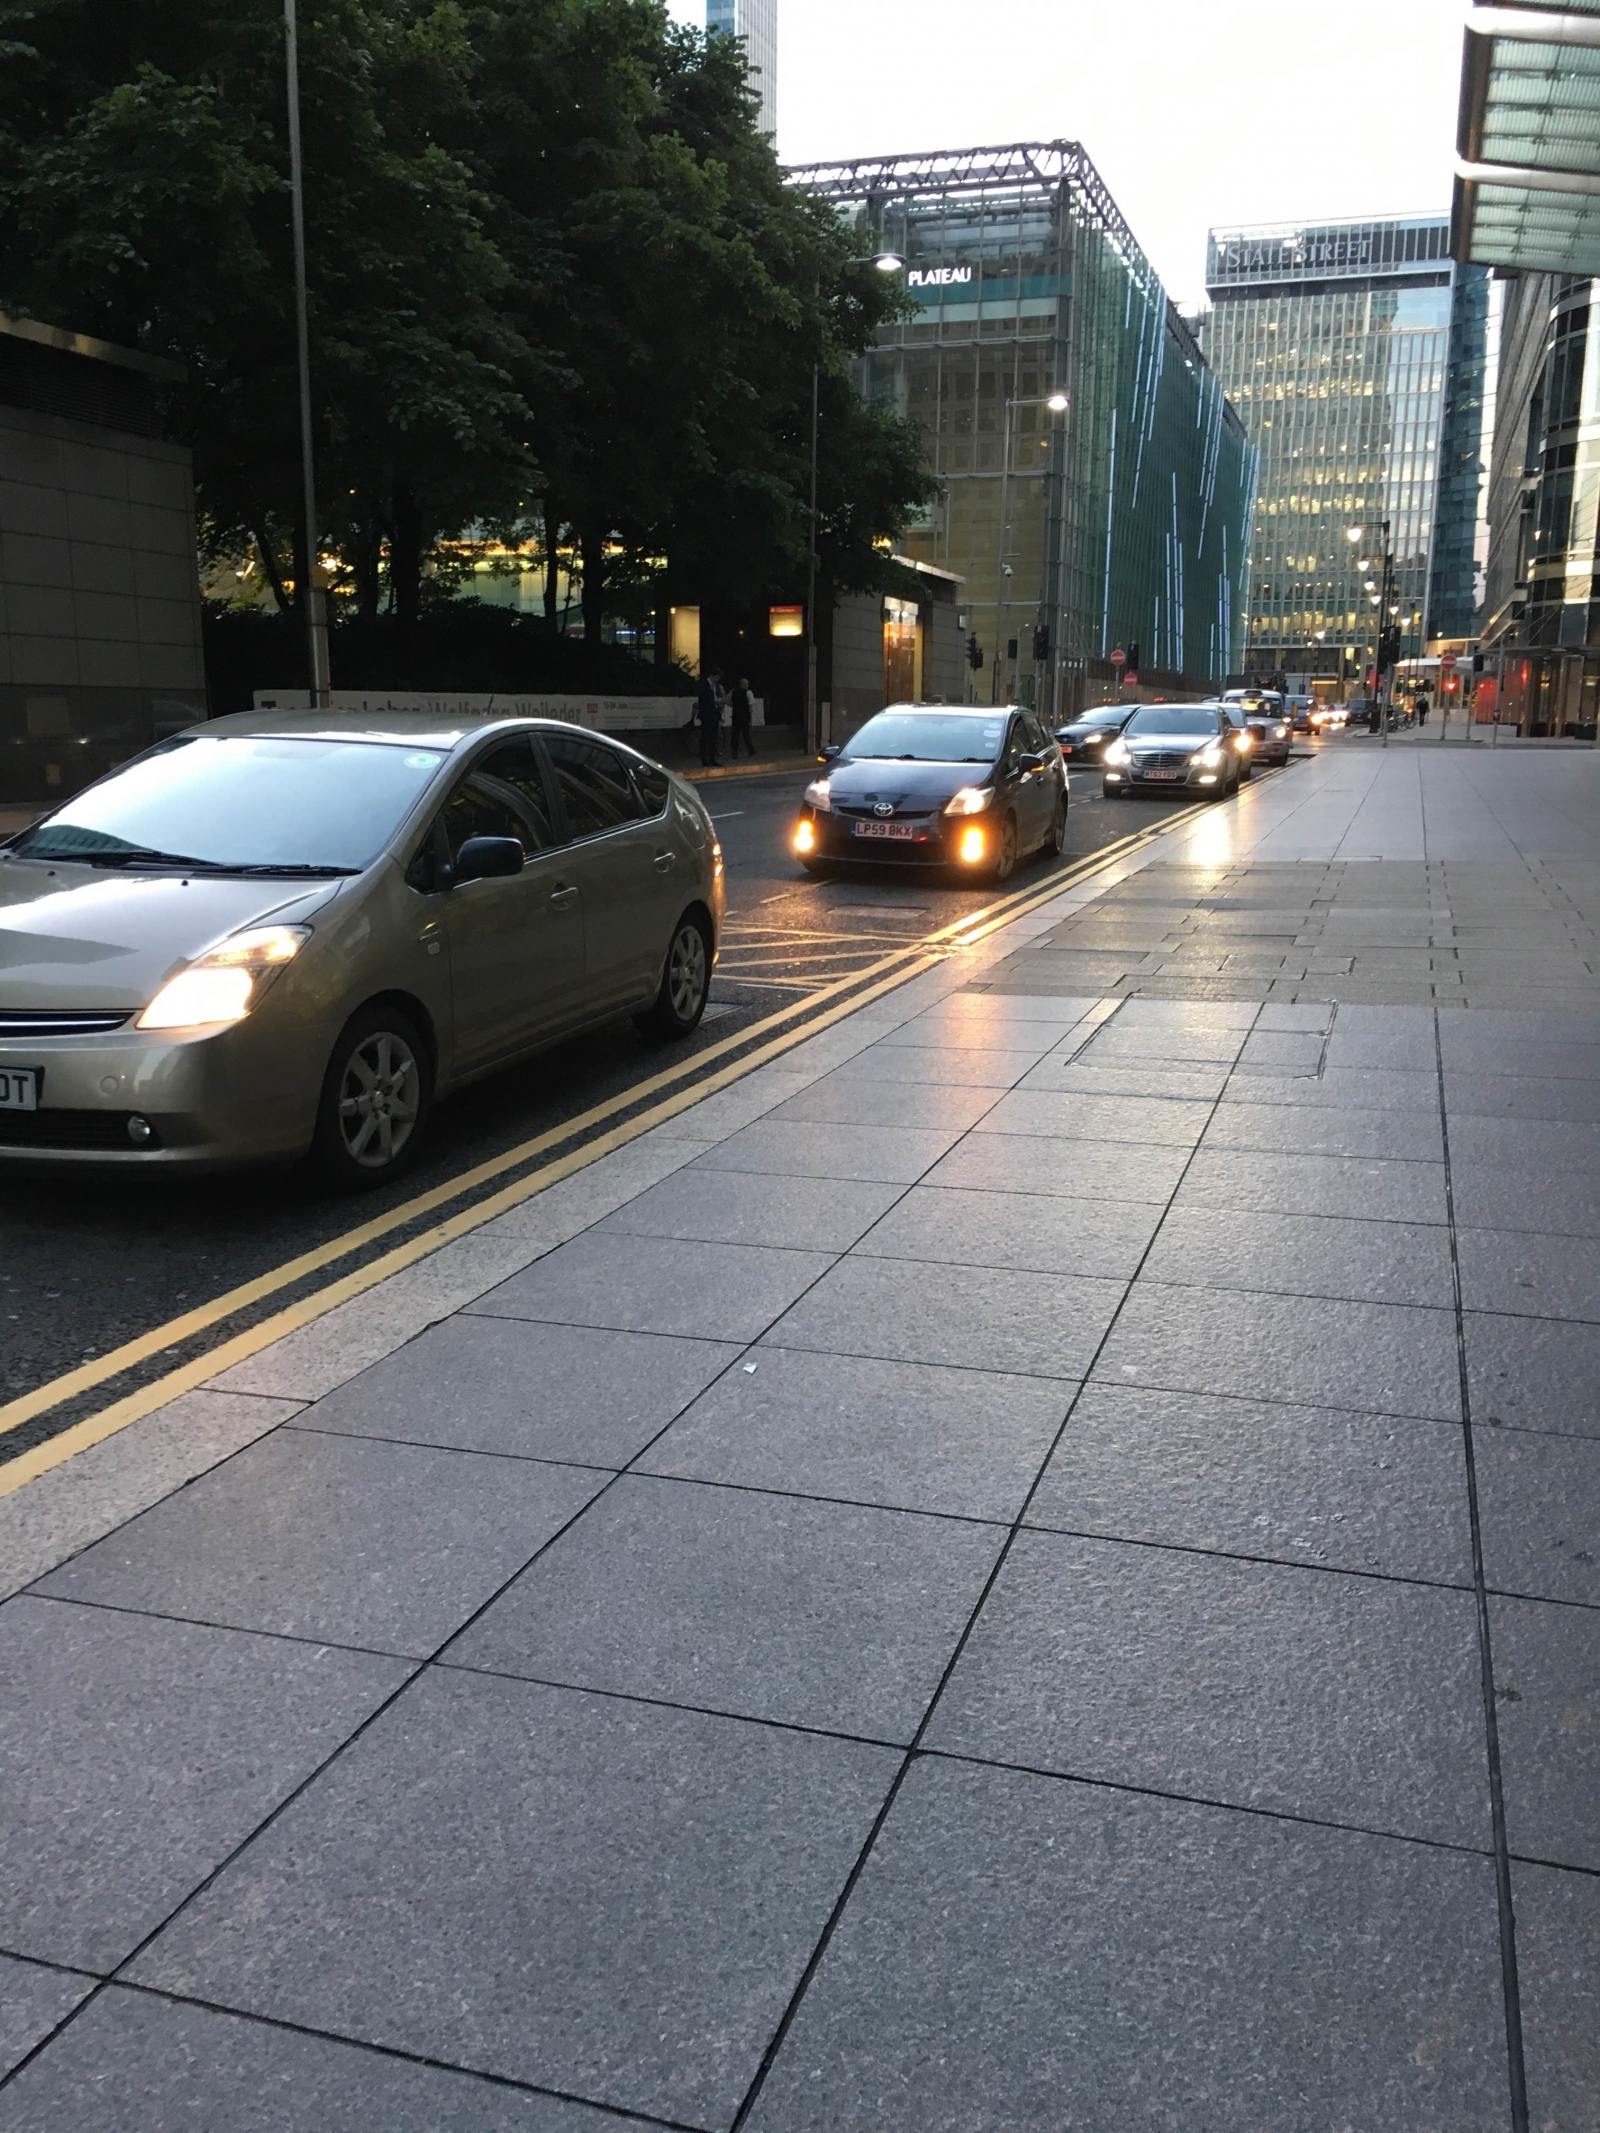 Bankers arrive at Canary Wharf